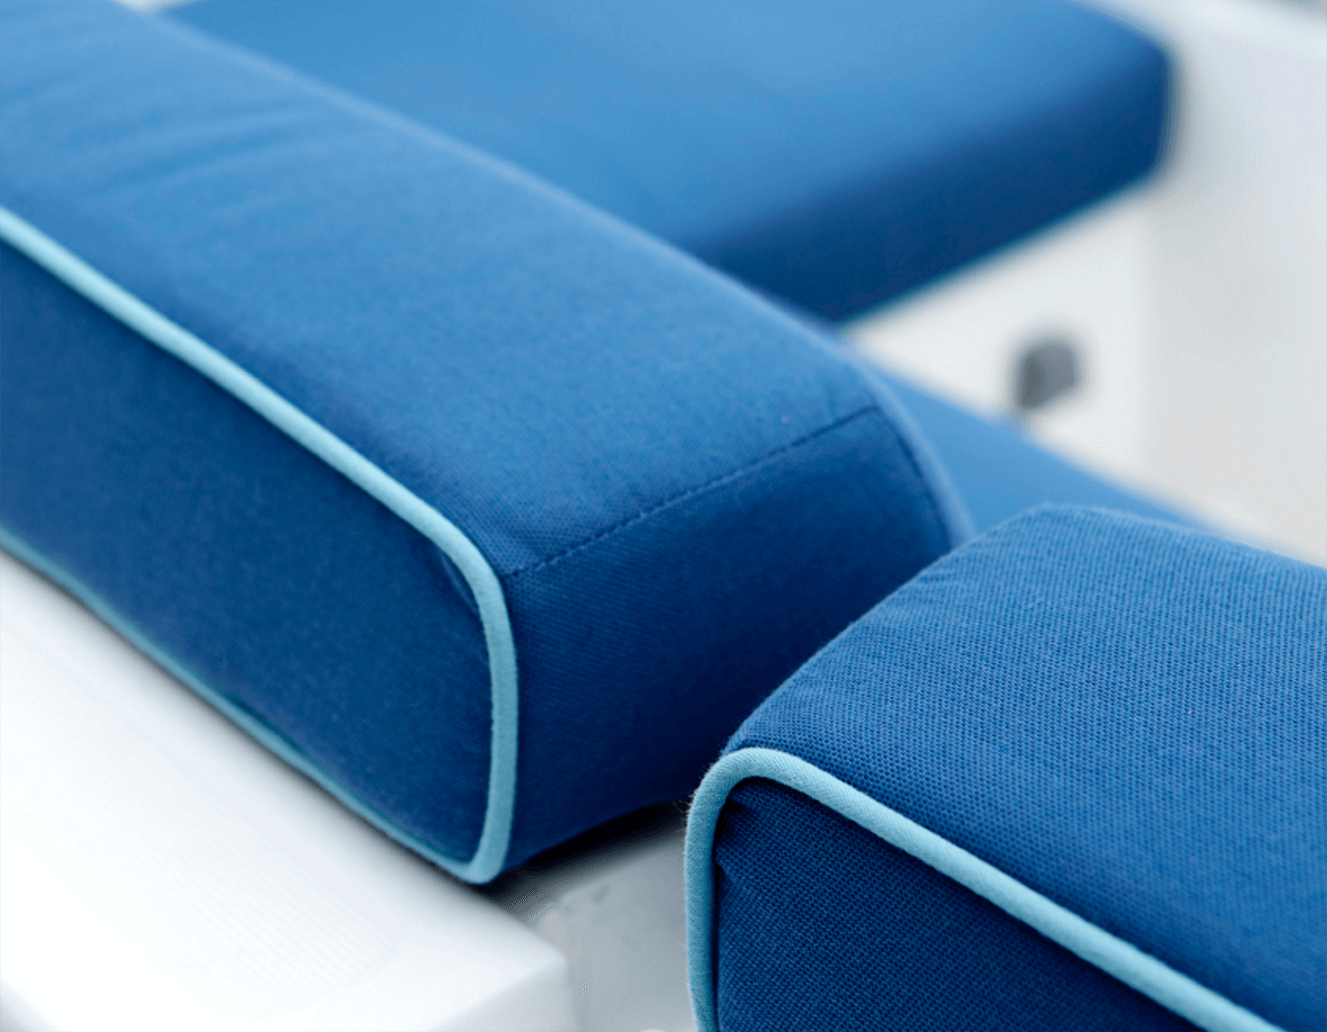 Sunbrella Seat Cushions | Sunbrella Fabric Pillows | Sunbrella Cusions